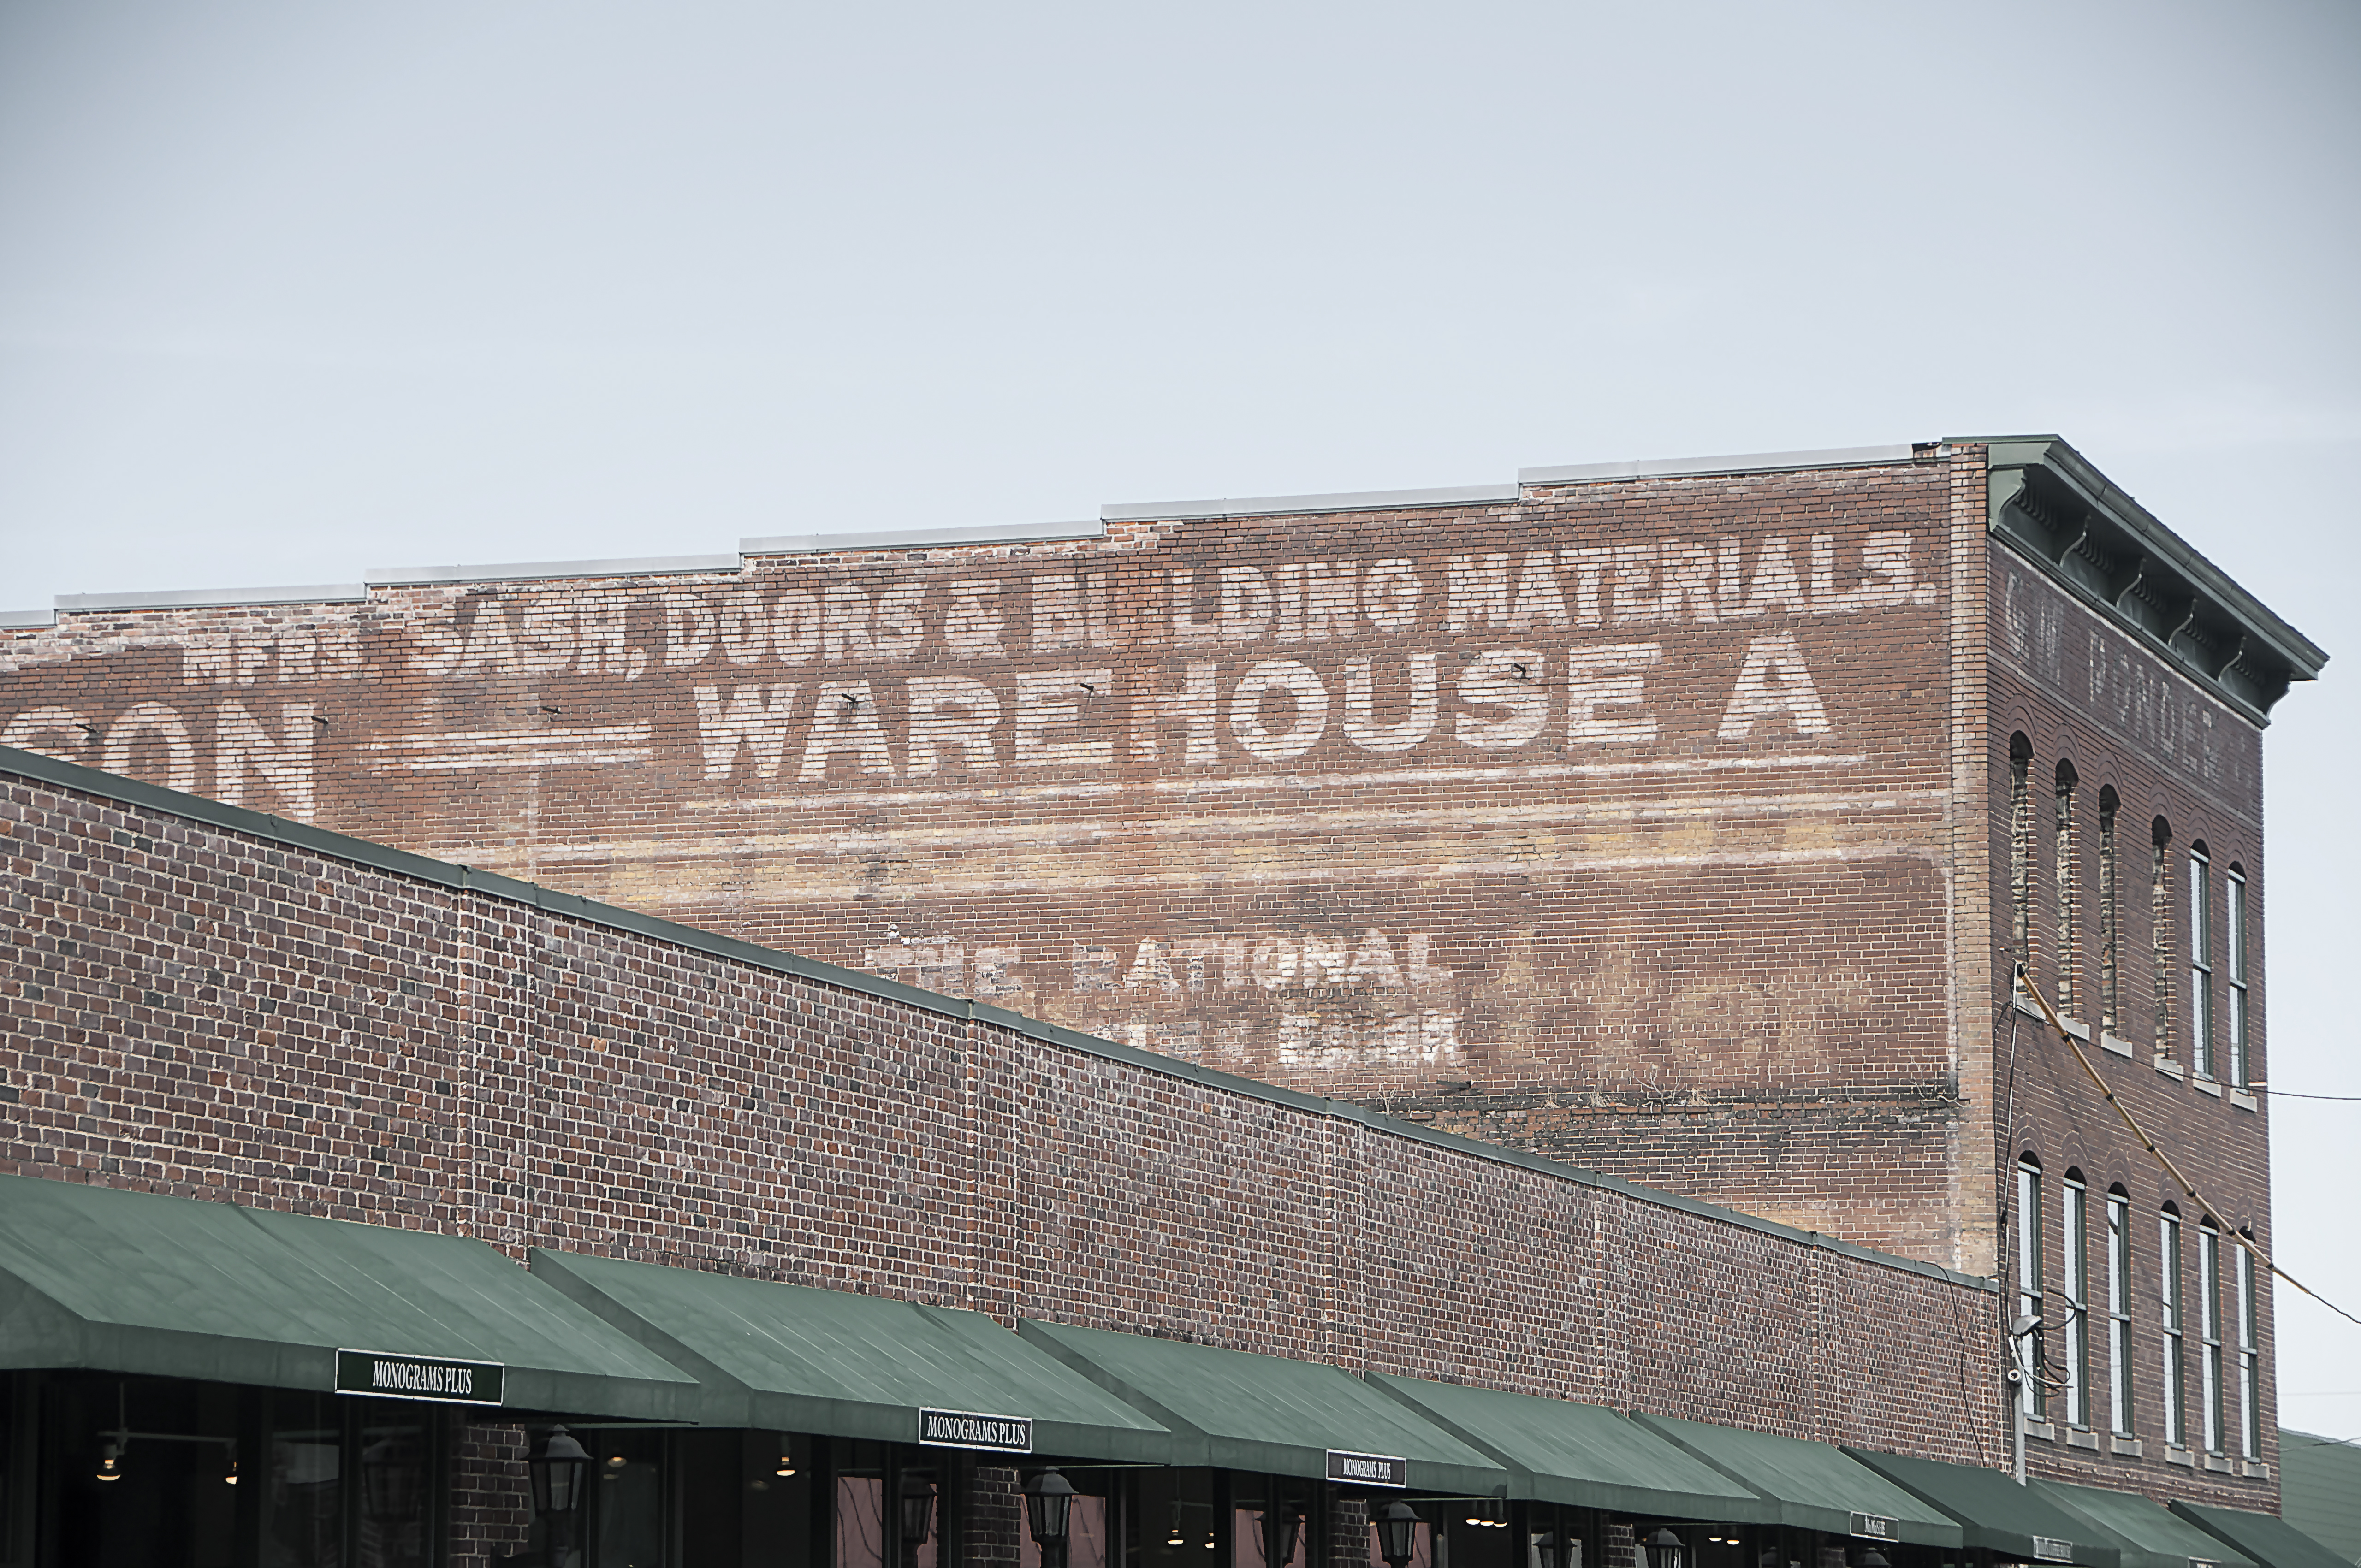 Cullman Warehouse District